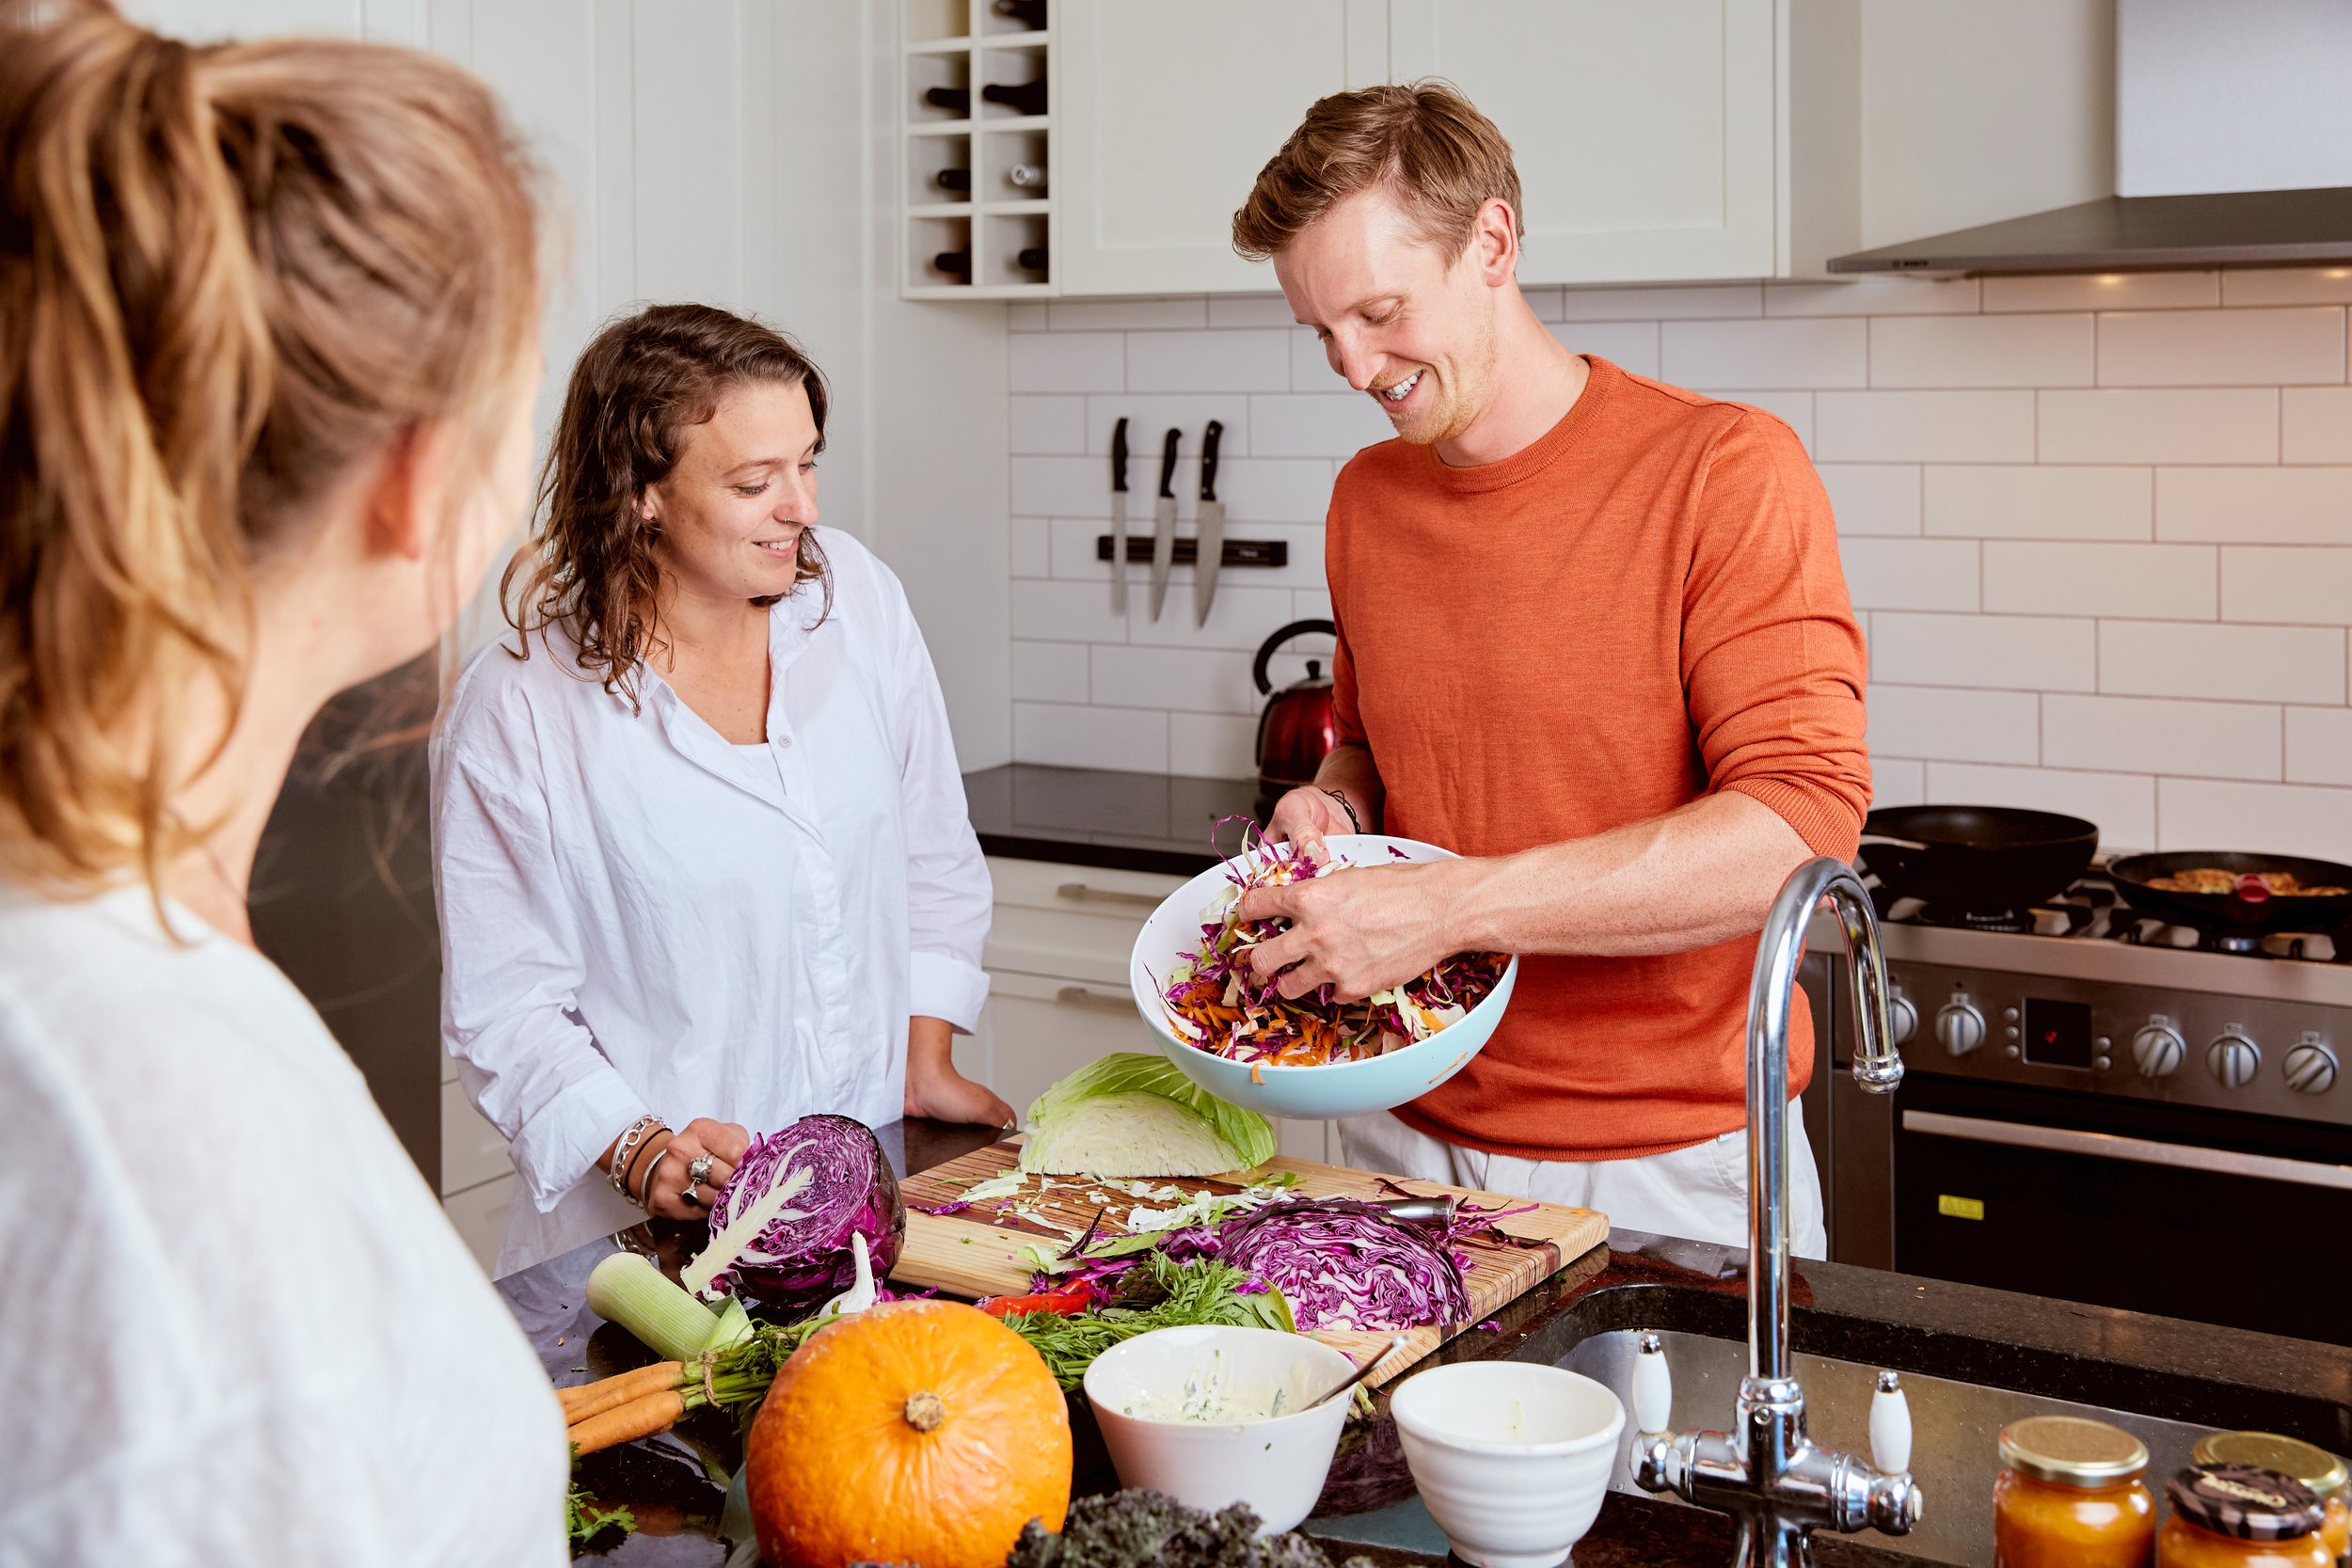 Your Functional Dietitan - Get an effective, tailored & sustainable nutrition program with ongoing support so you can reach your goals.Learn more ➝